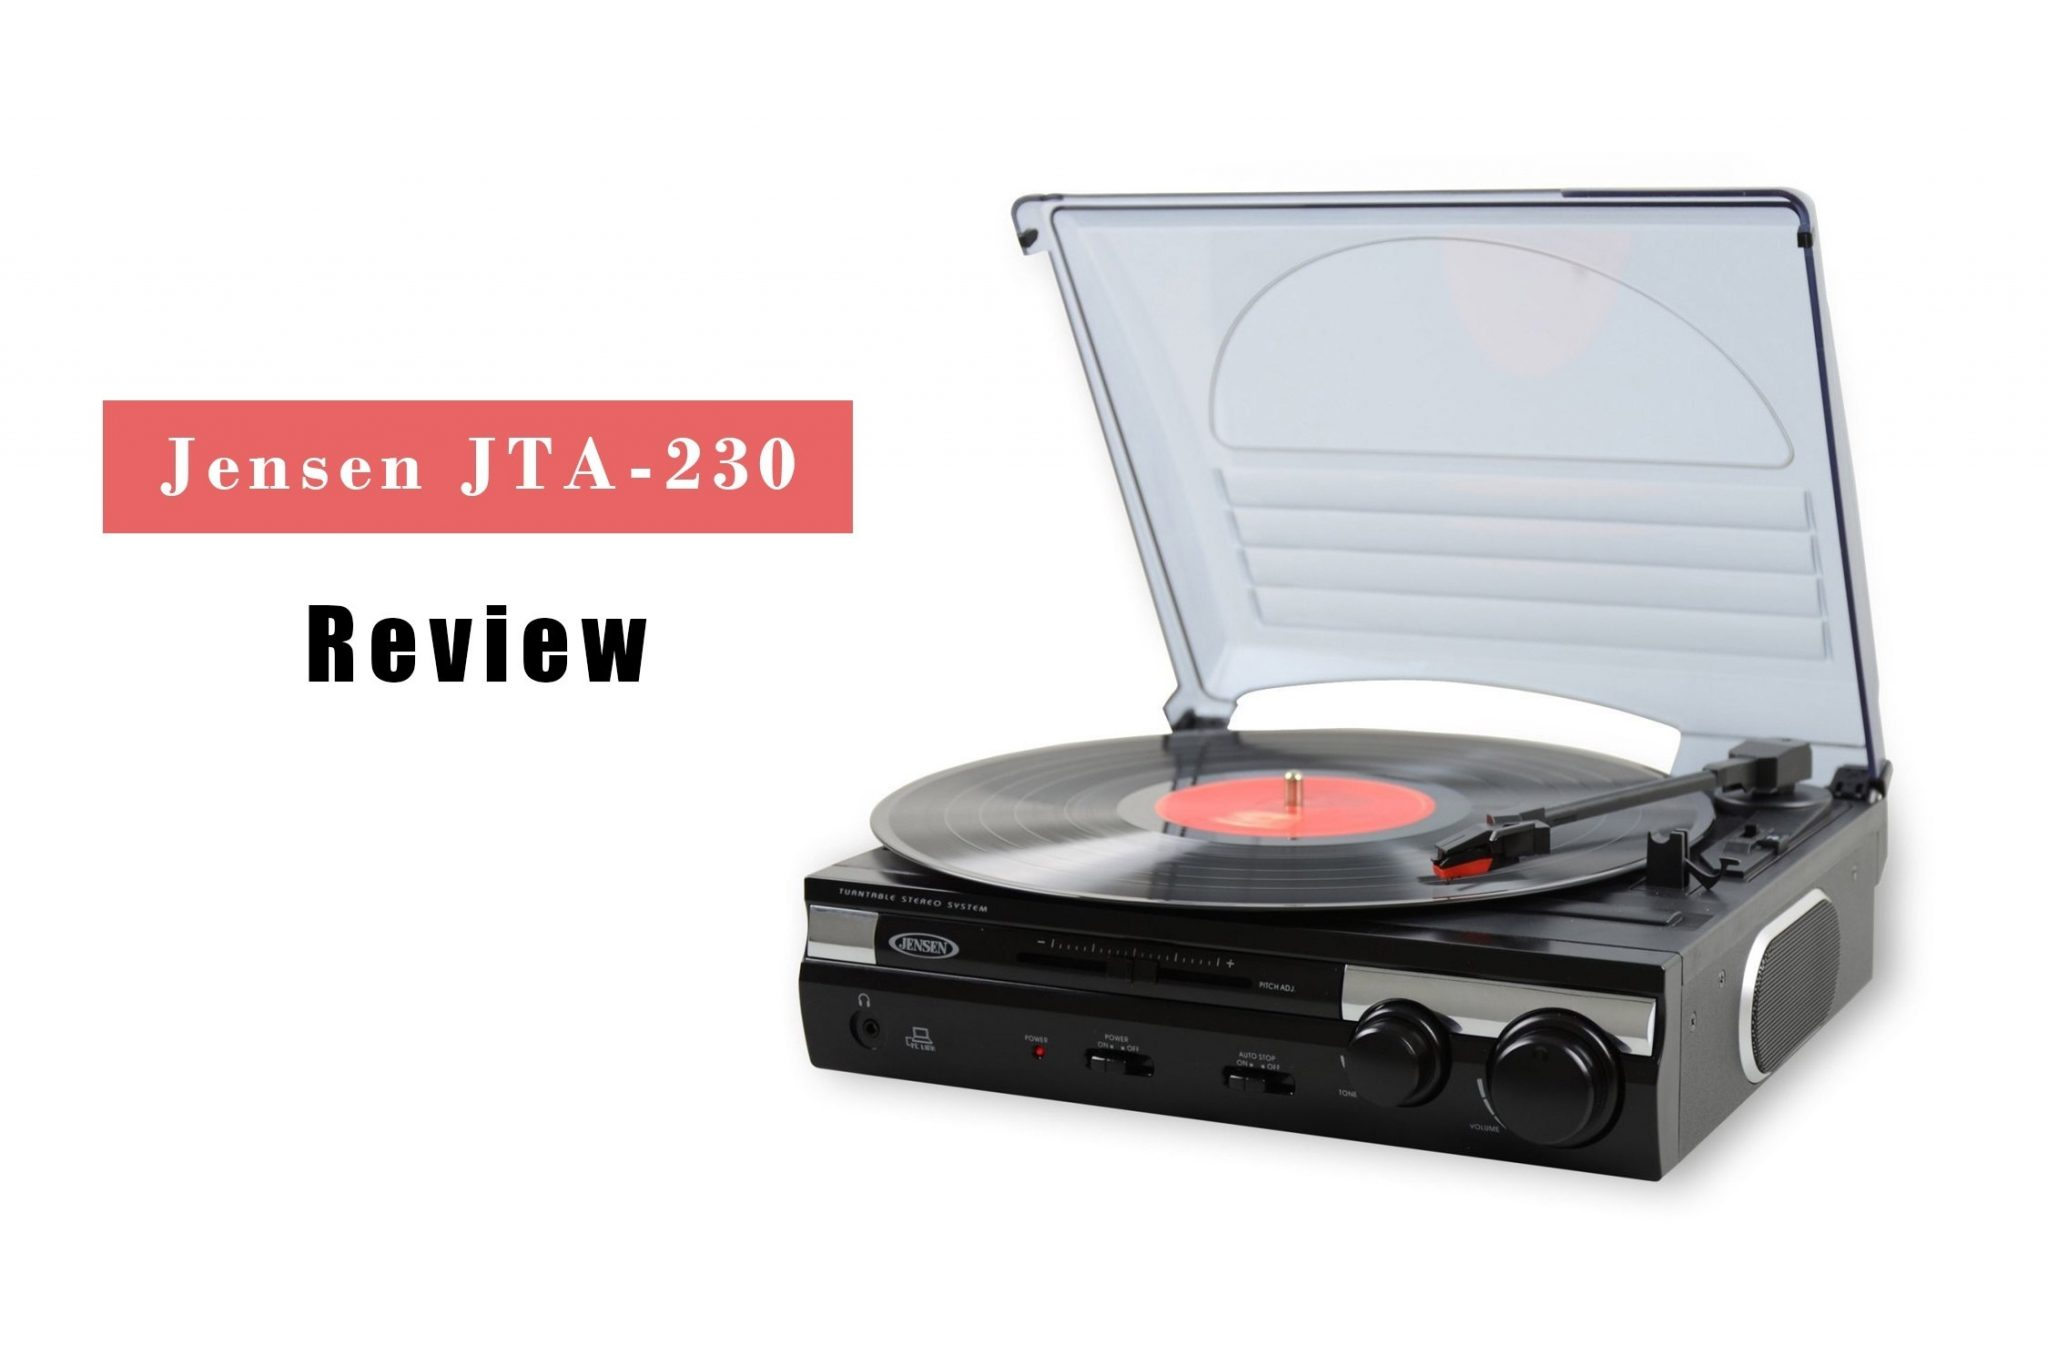 A comprehensive review of the Jensen JTA-230